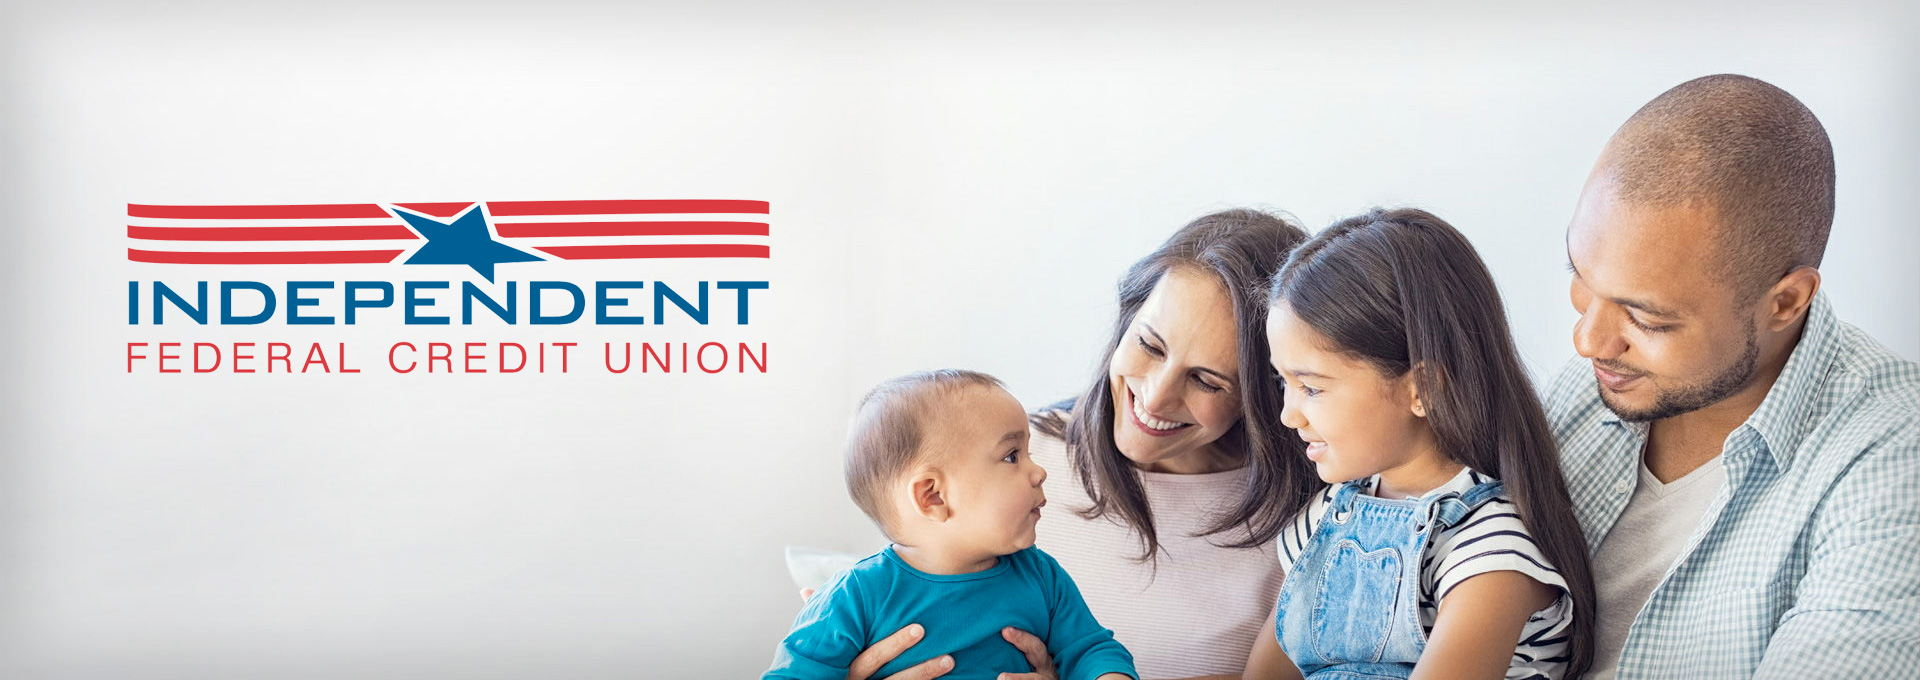 Independent Federal Credit Union